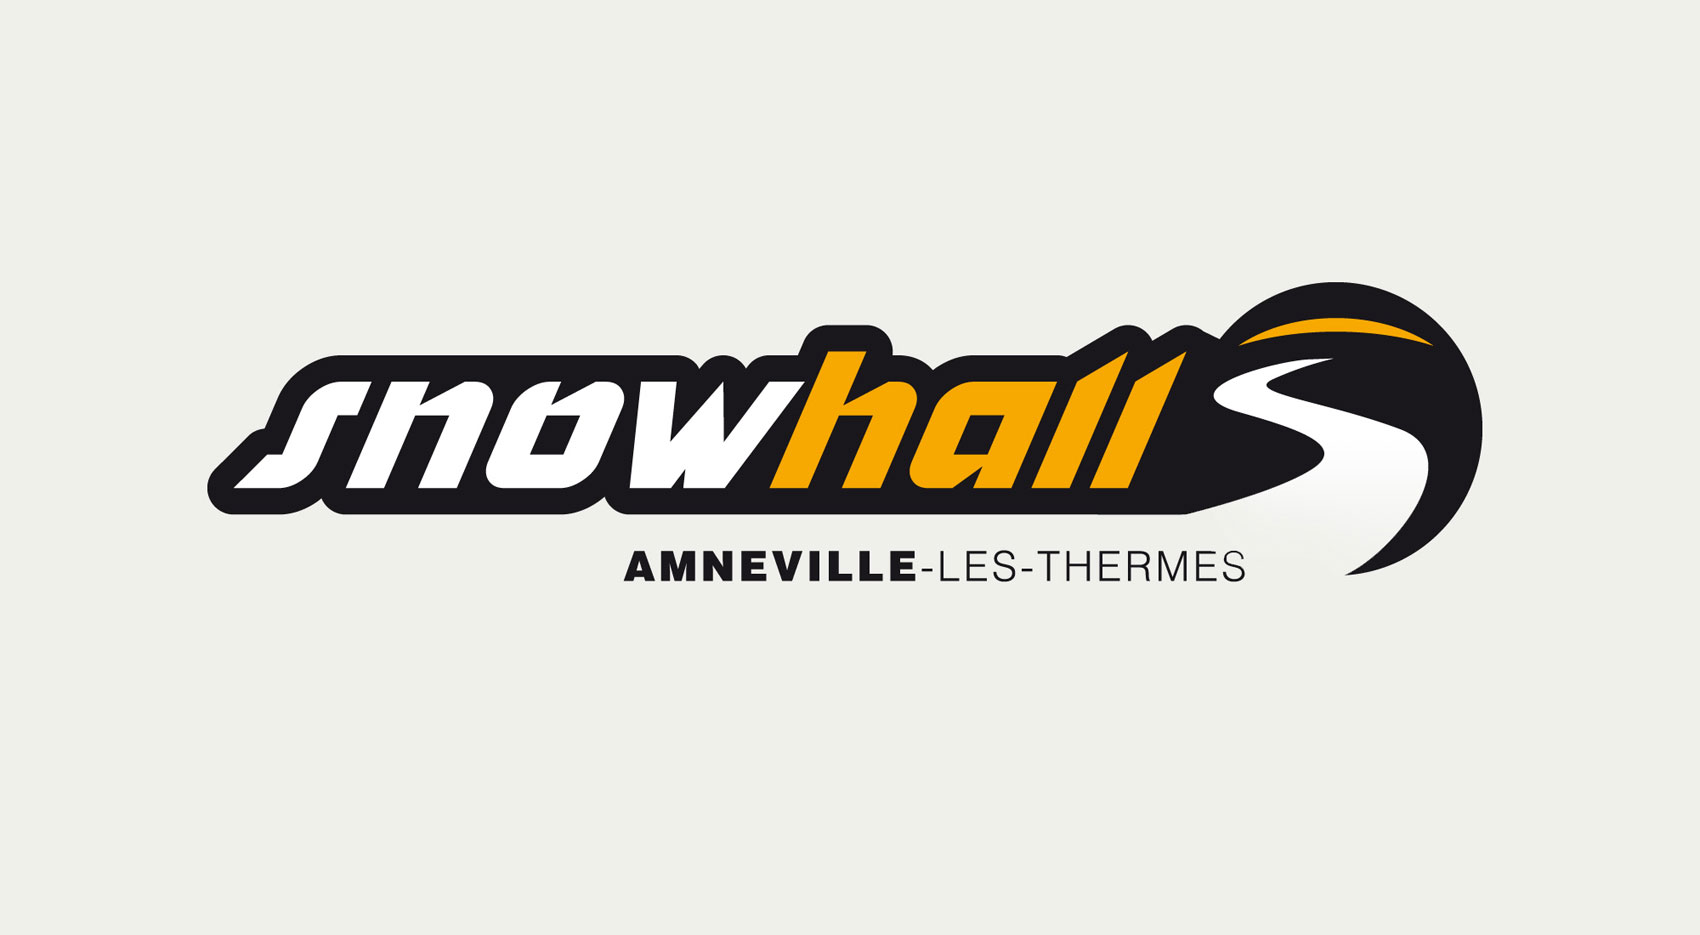 snowhall-1